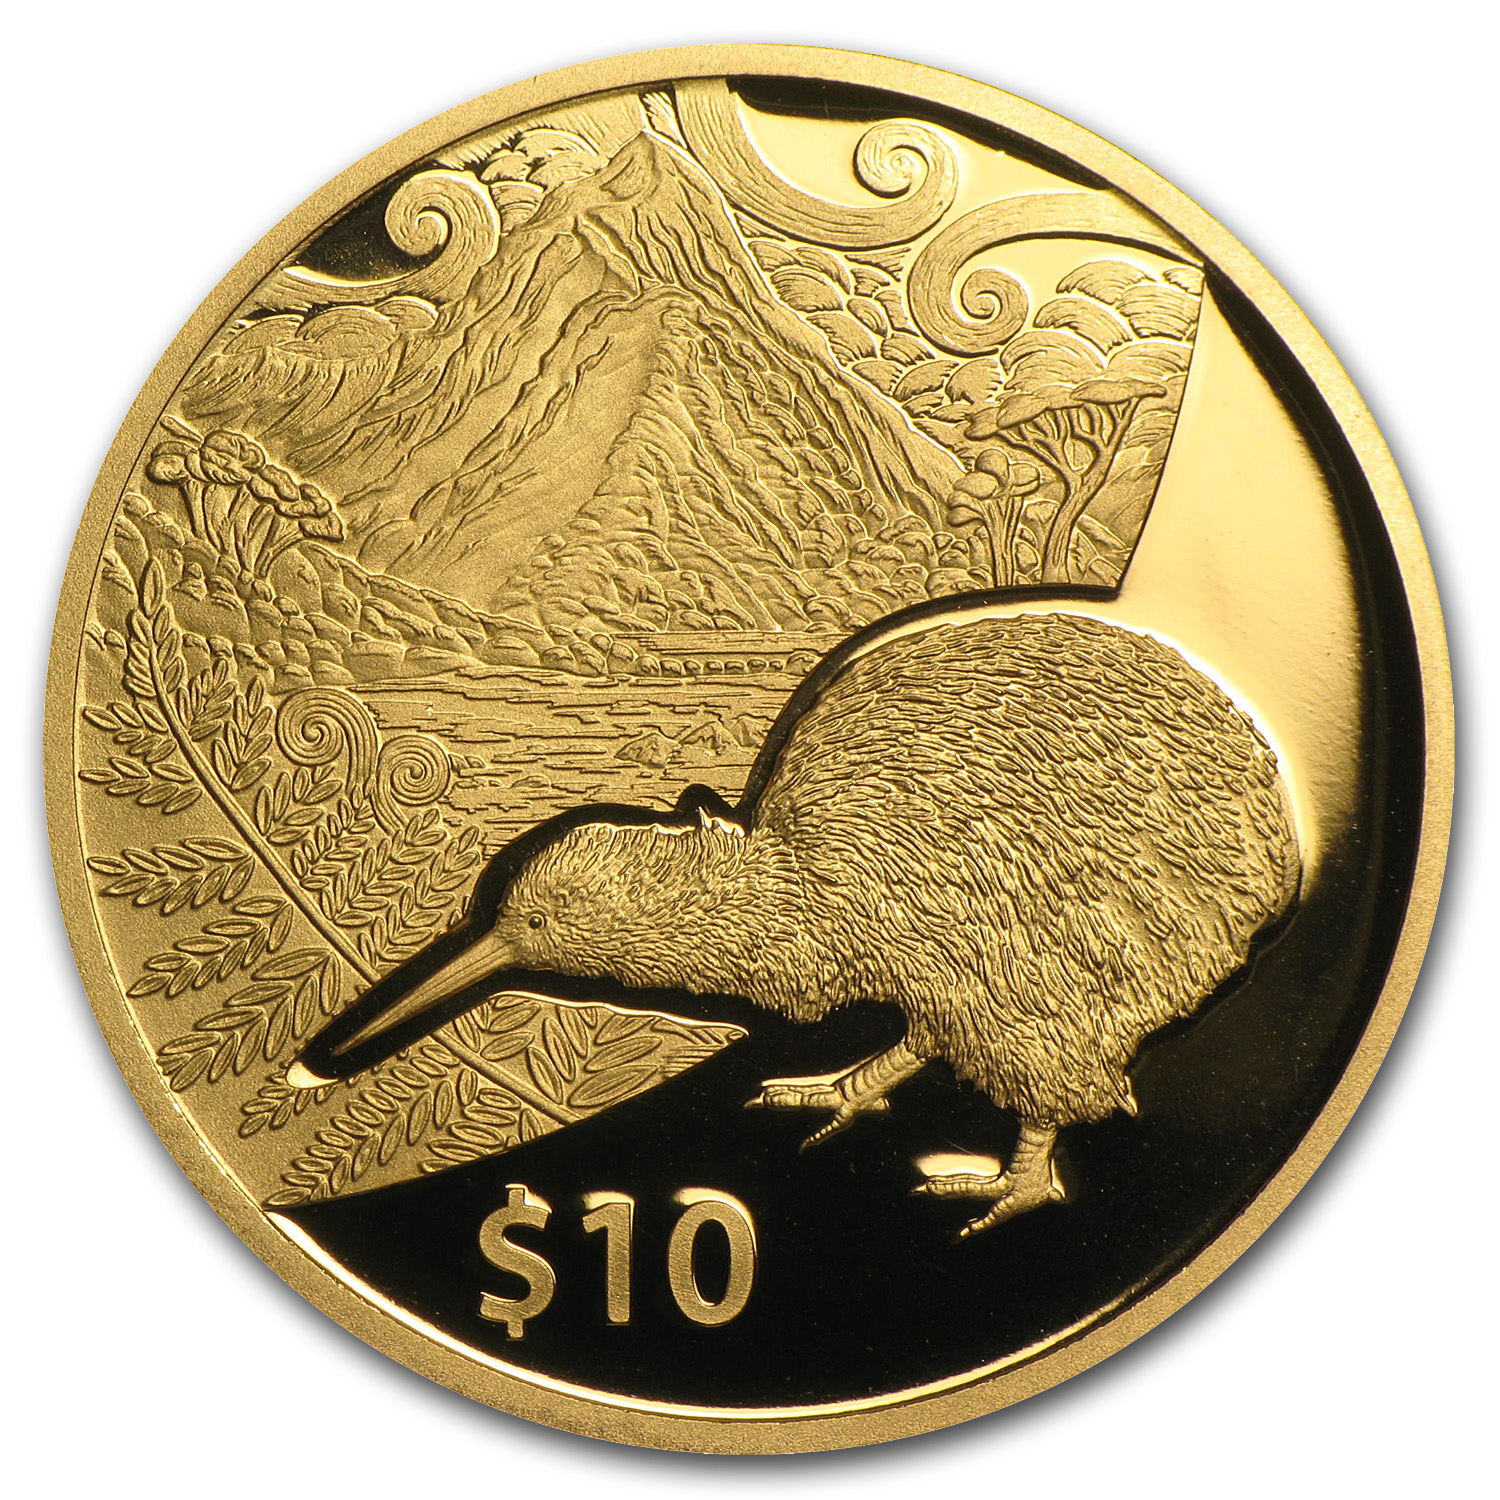 2014 1/4 oz Gold New Zealand $10 Treasures Kiwi Proof